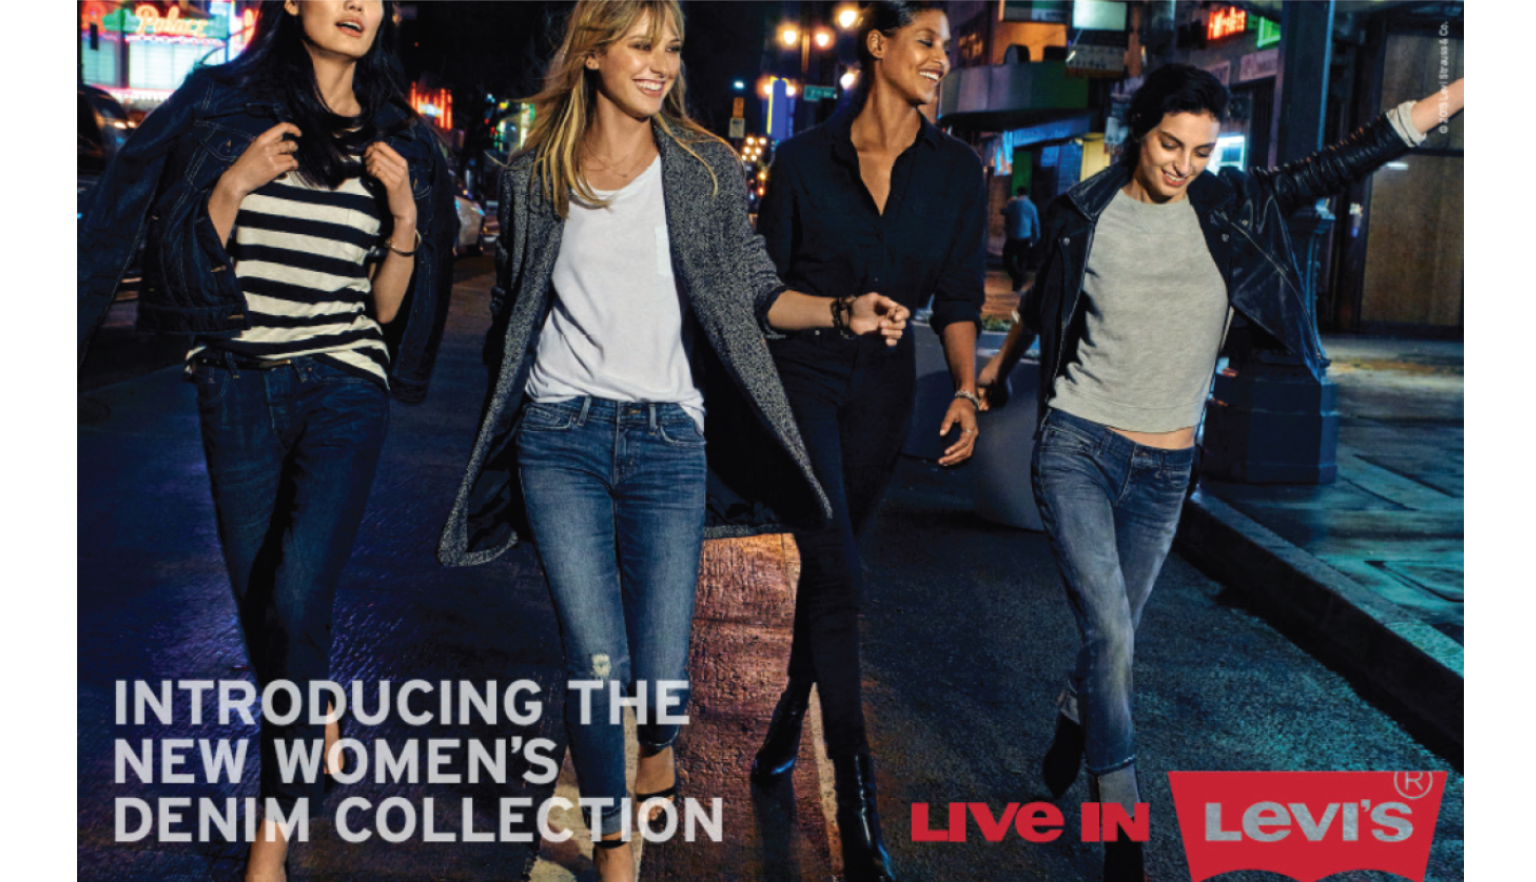 Introducing Levi's® New Women's Denim Collection